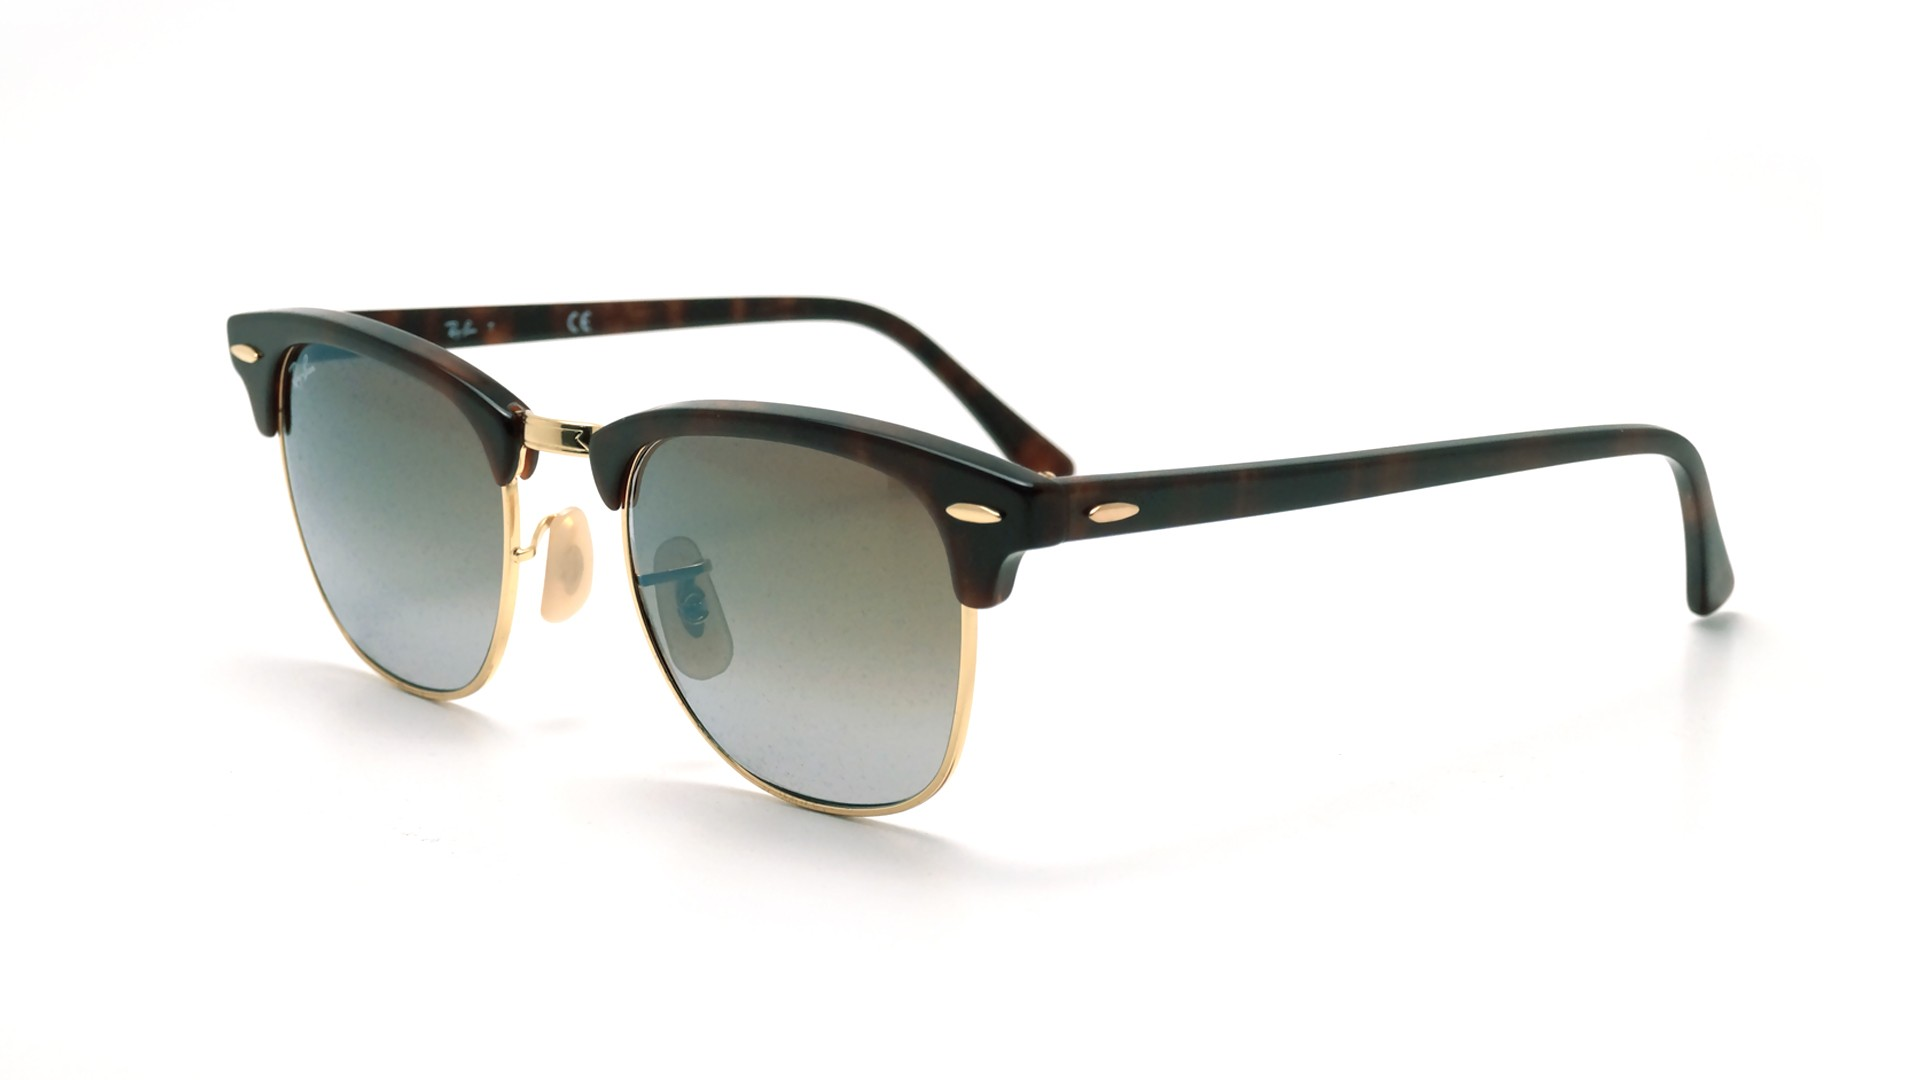 00aab8fff1 Sunglasses Ray-Ban Clubmaster Tortoise Flash lenses RB3016 990 9J 49-21  Small Degraded Flash